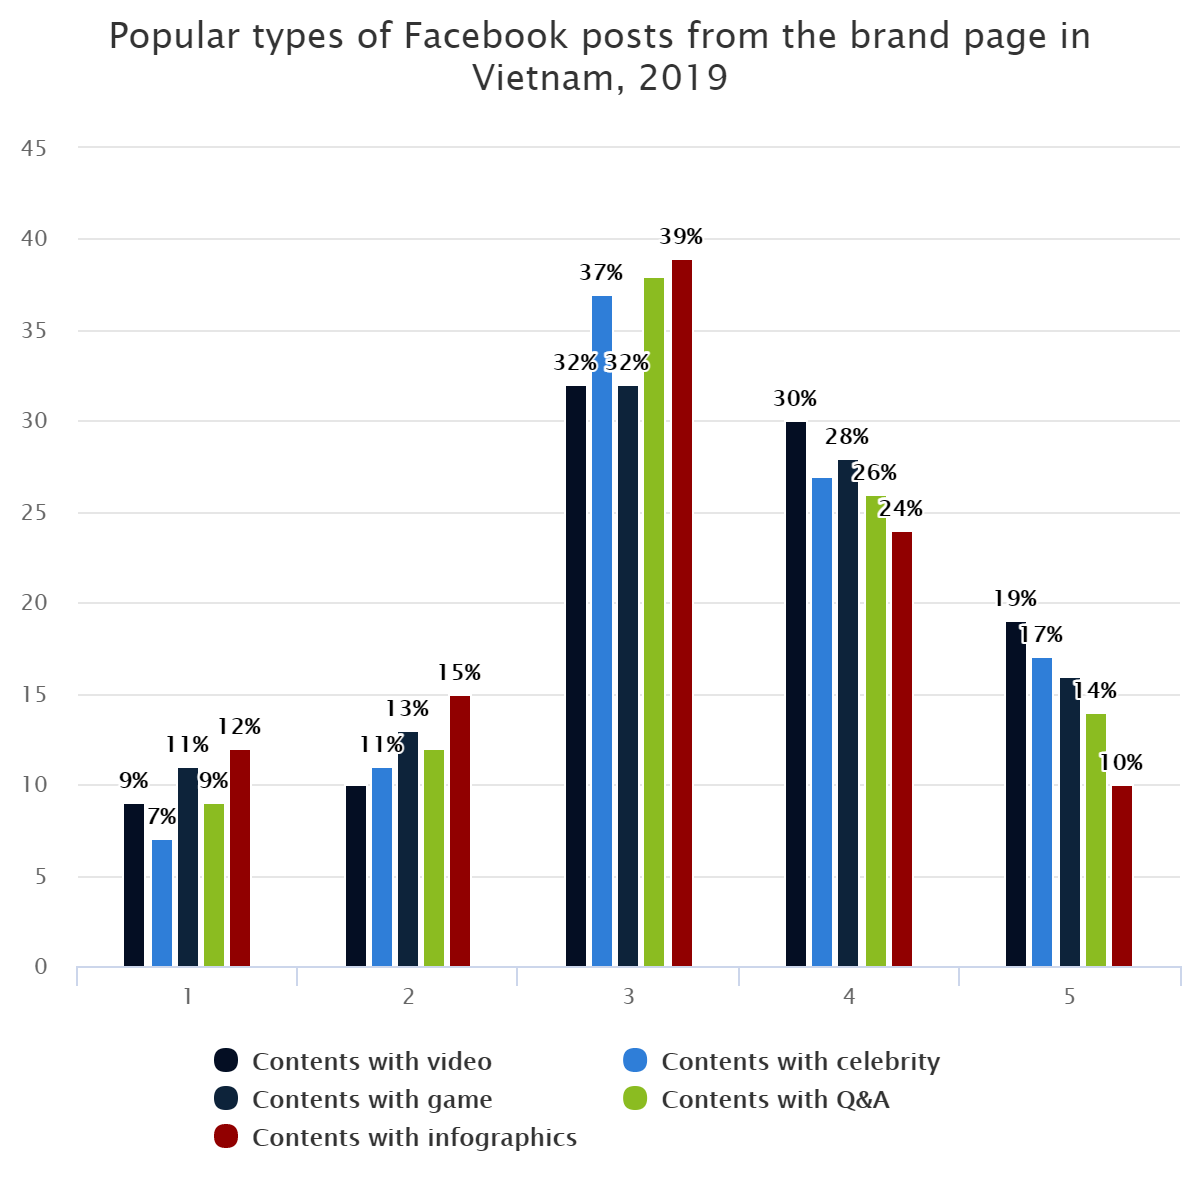 Popular types of Facebook posts from the brand page in Vietnam, 2019